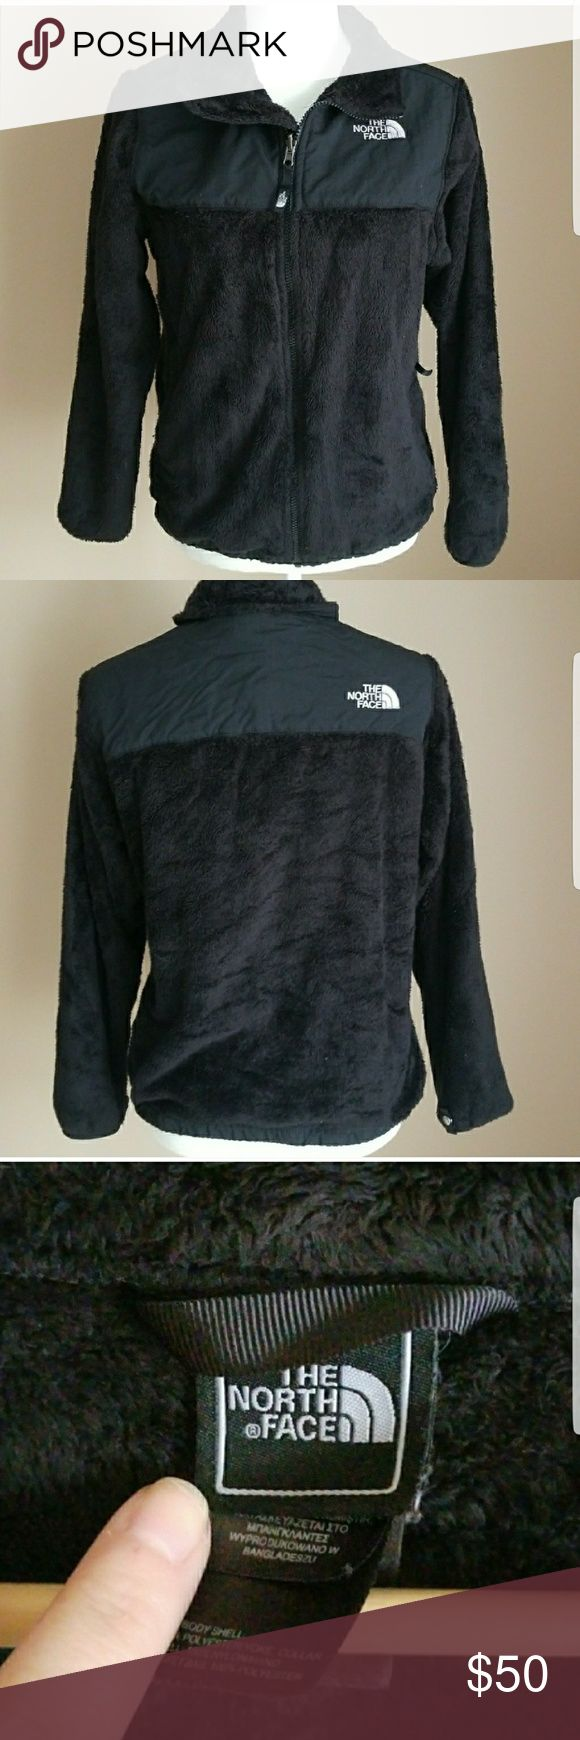 Girls Youth XL The North Face Jacket Girls Youth XL (18) black zip jacket from The North Face.  Very soft, faux fur material.  Pockets on the sides.  In excellent condition. The North Face Jackets & Coats